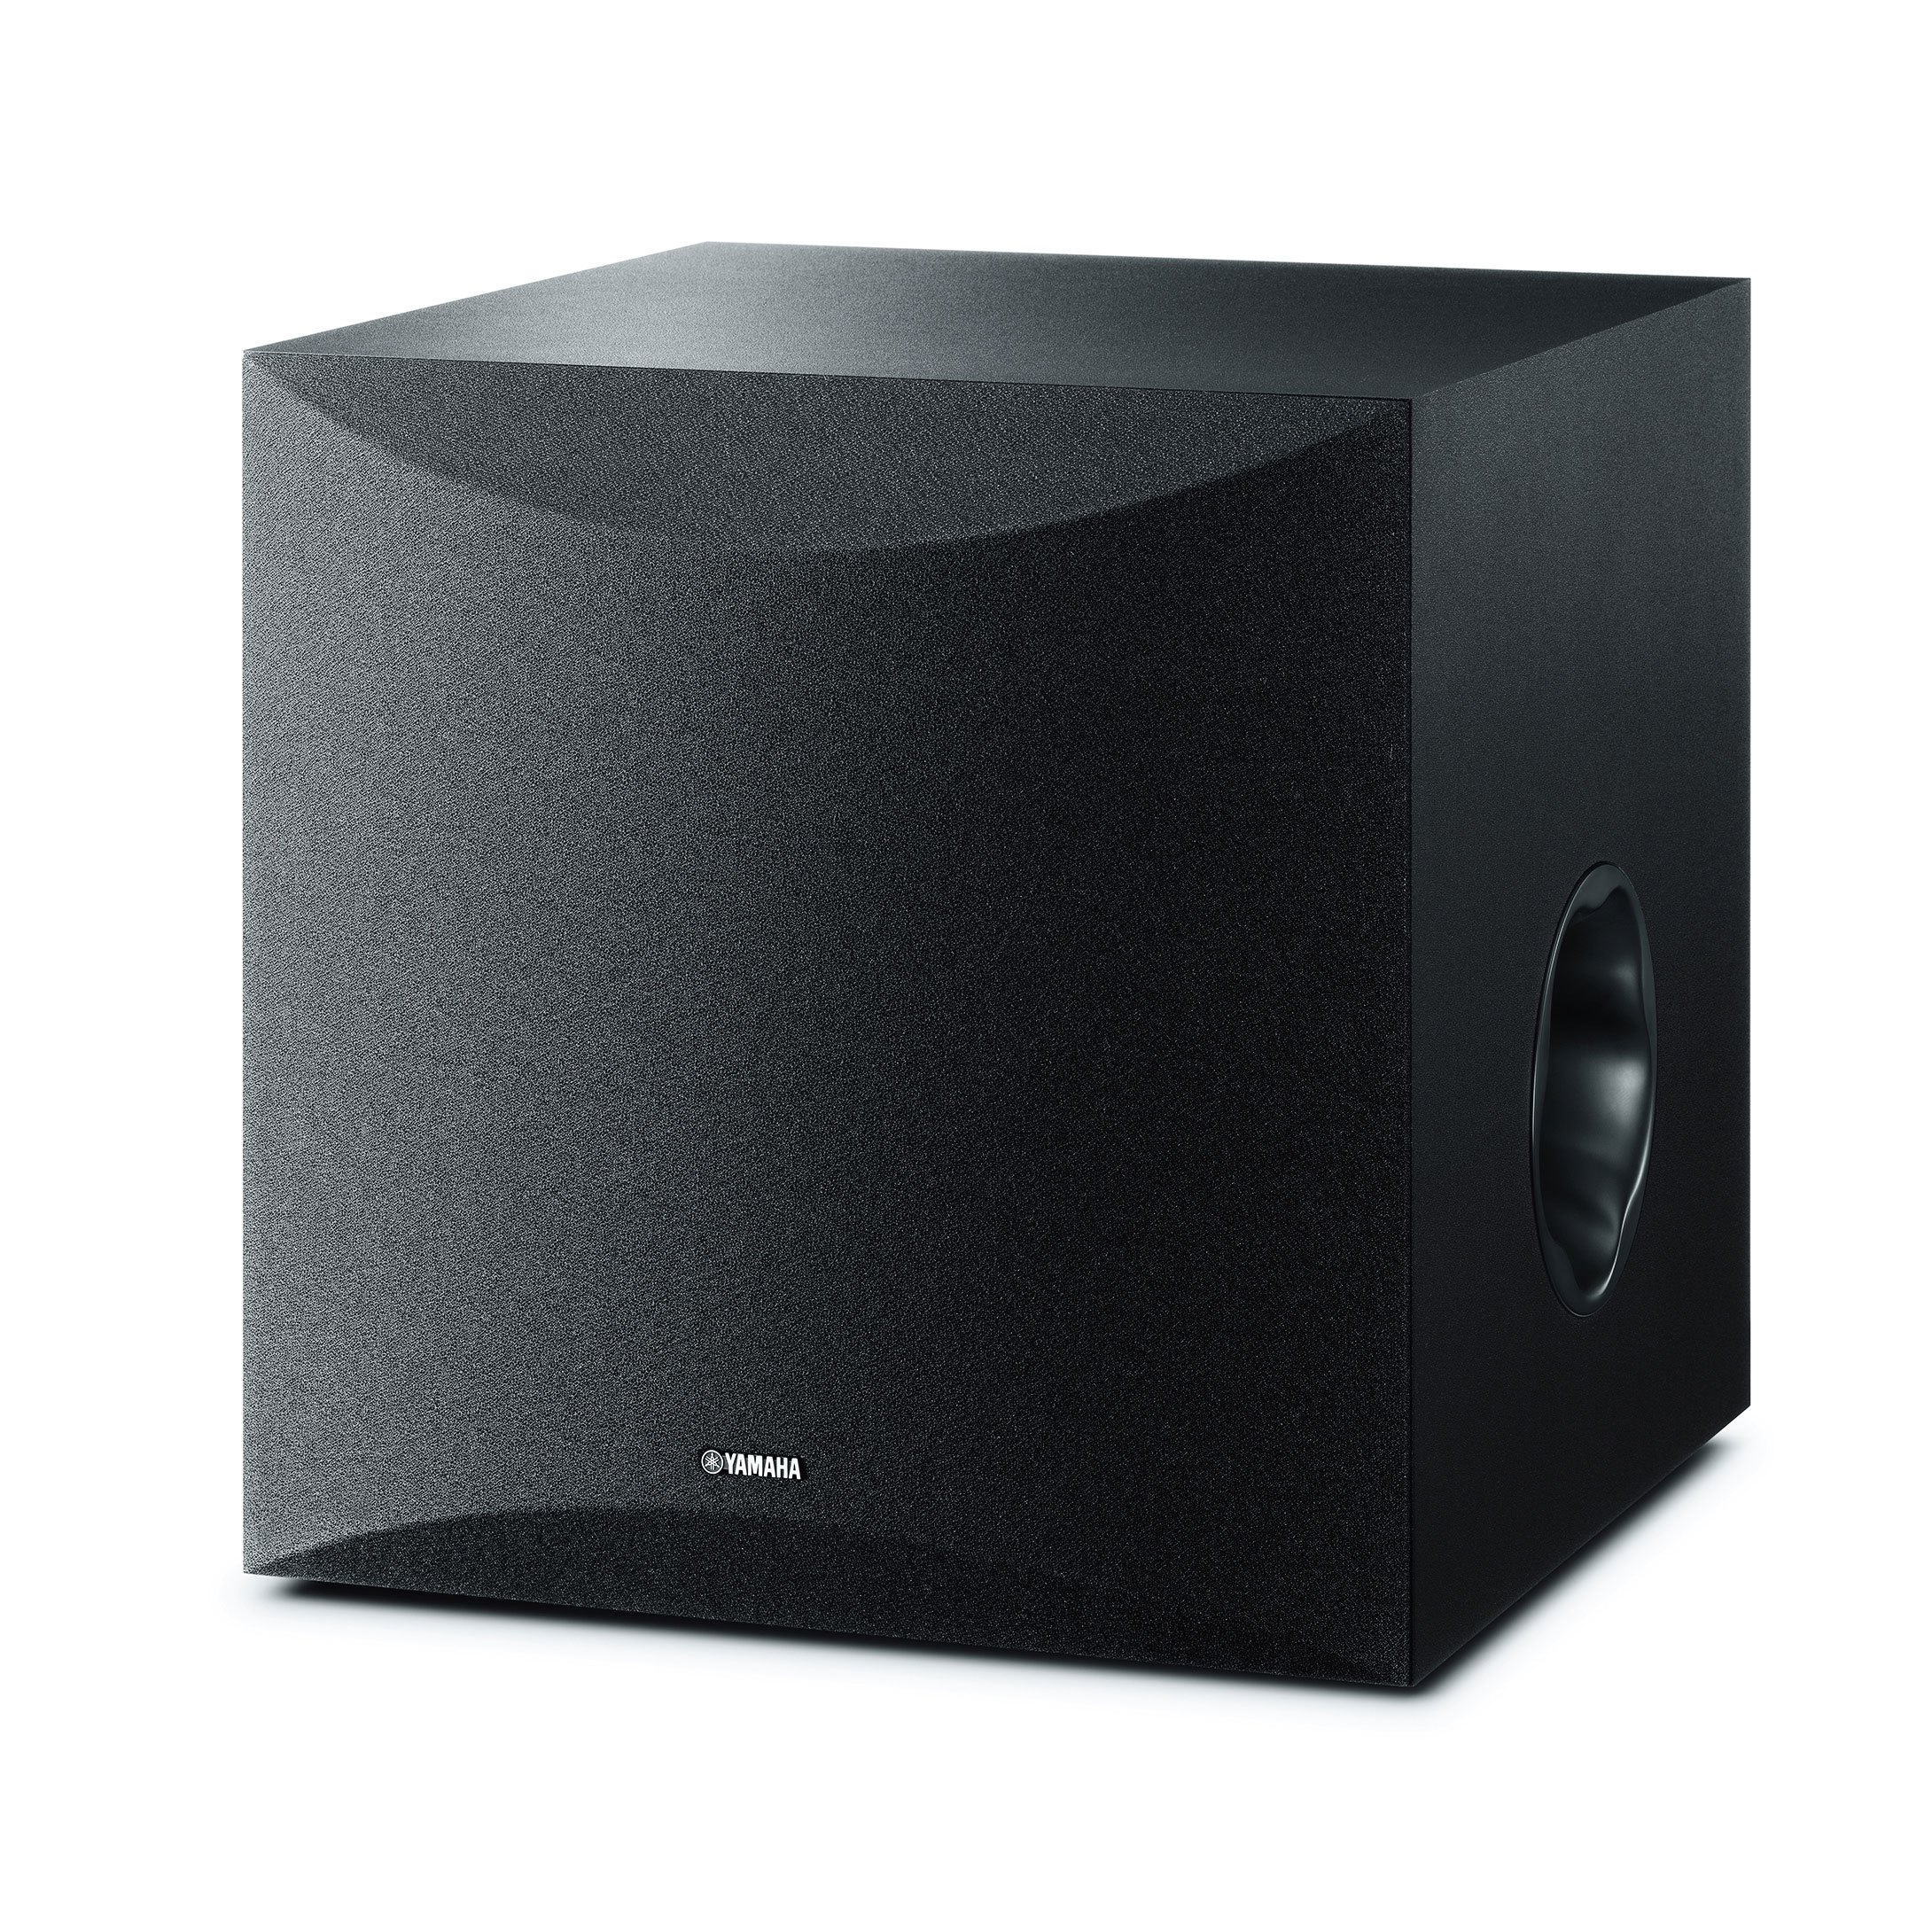 Yamaha NS-SW100 Subwoofer Price in India